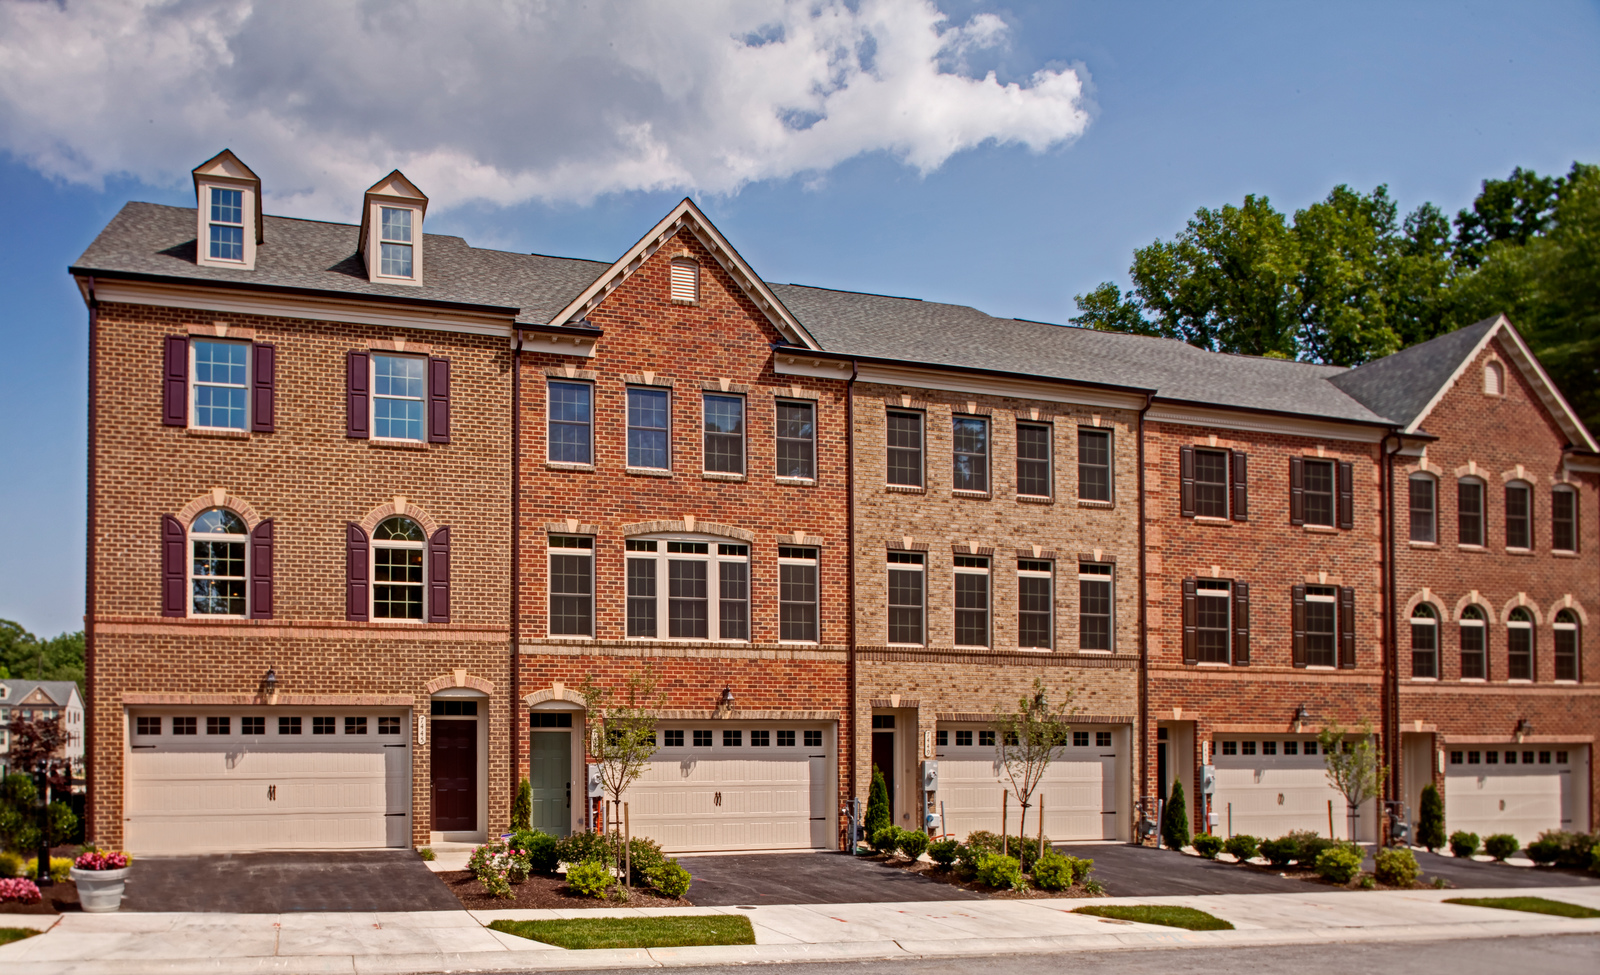 This handsome townhome features a stately elevation, garage parking and ample outdoor living.